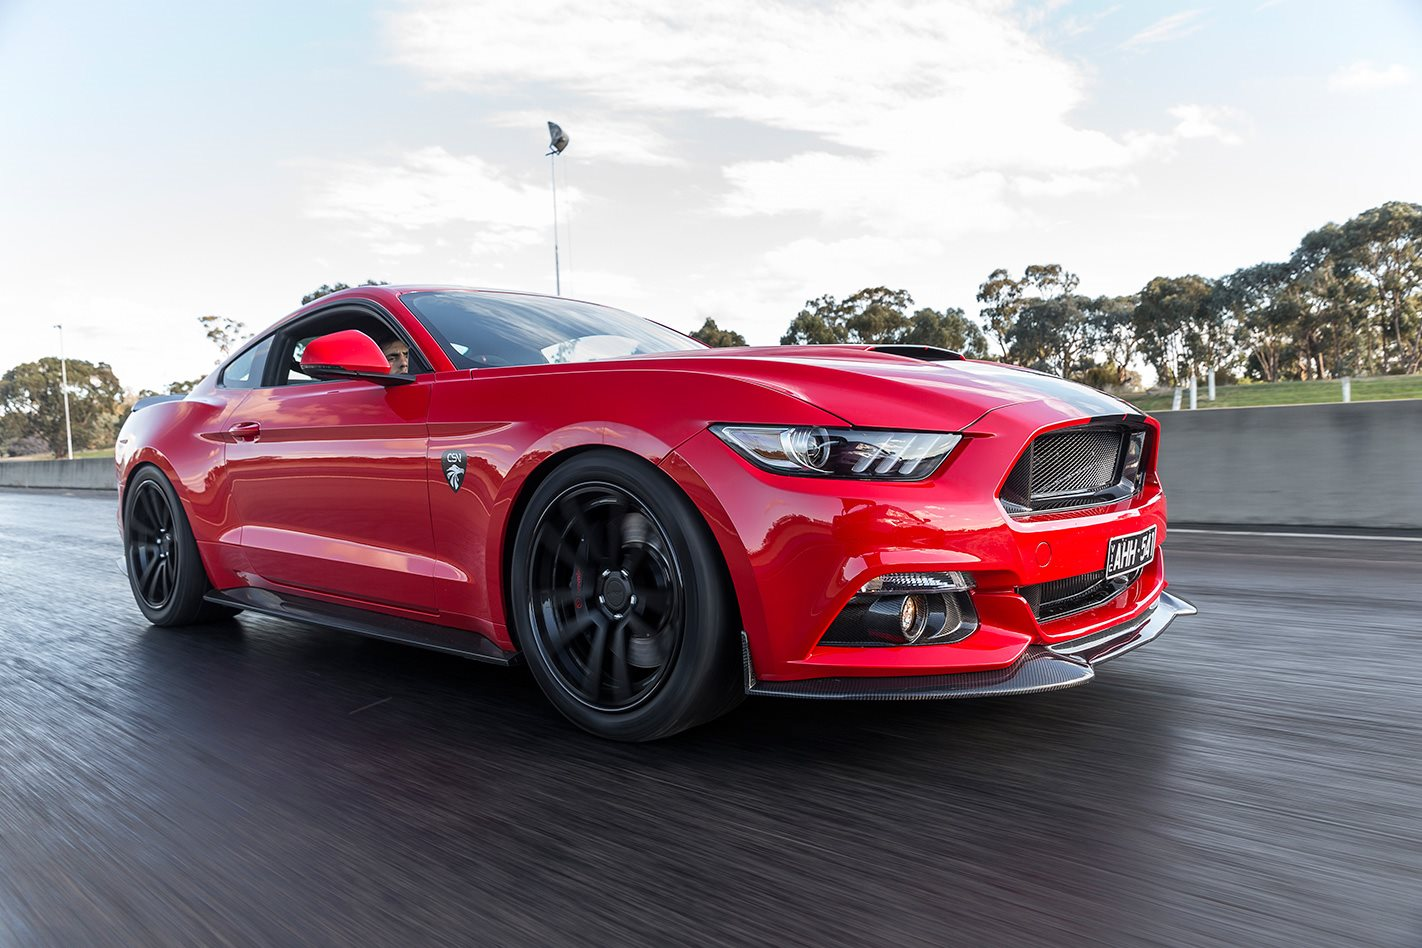 2017 Corsa Specialised Vehicles Mustang GT on racetrack.jpg